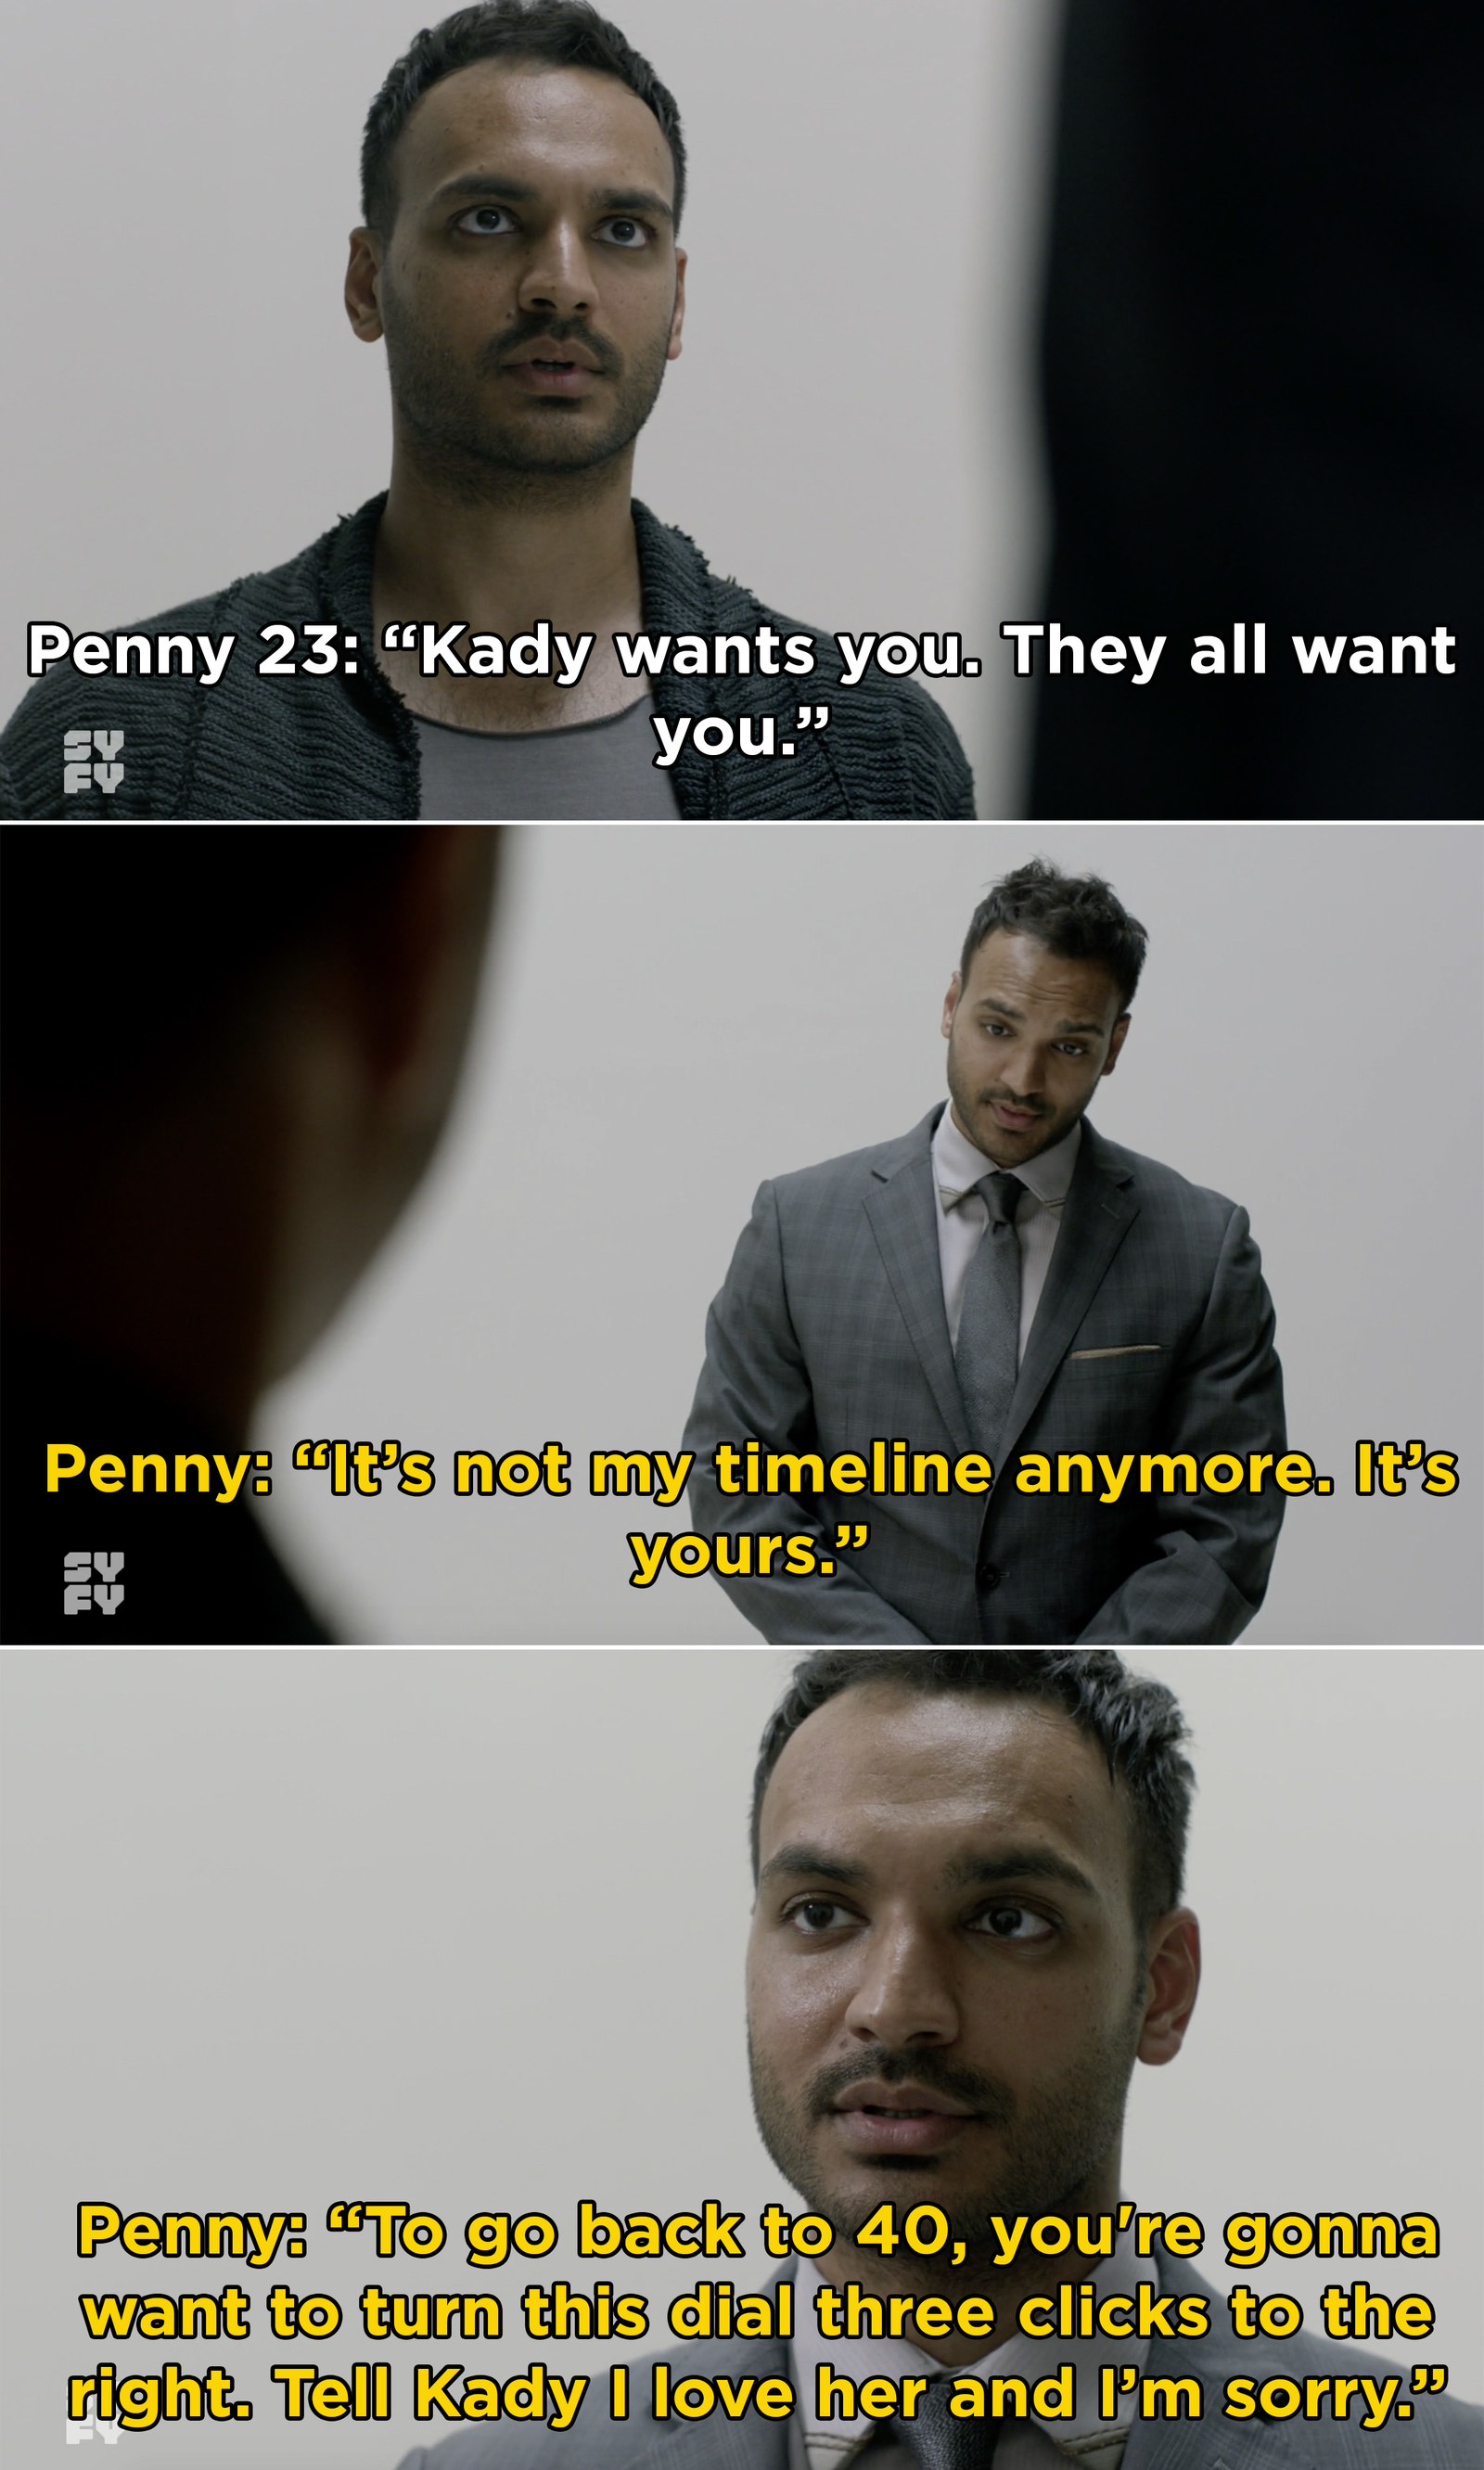 On  The Magicians , Penny 23 met our original (and dead) Penny while trying to return to our timeline. This gave us an emotional moment when original Penny gave Penny 23 a message for Kady.